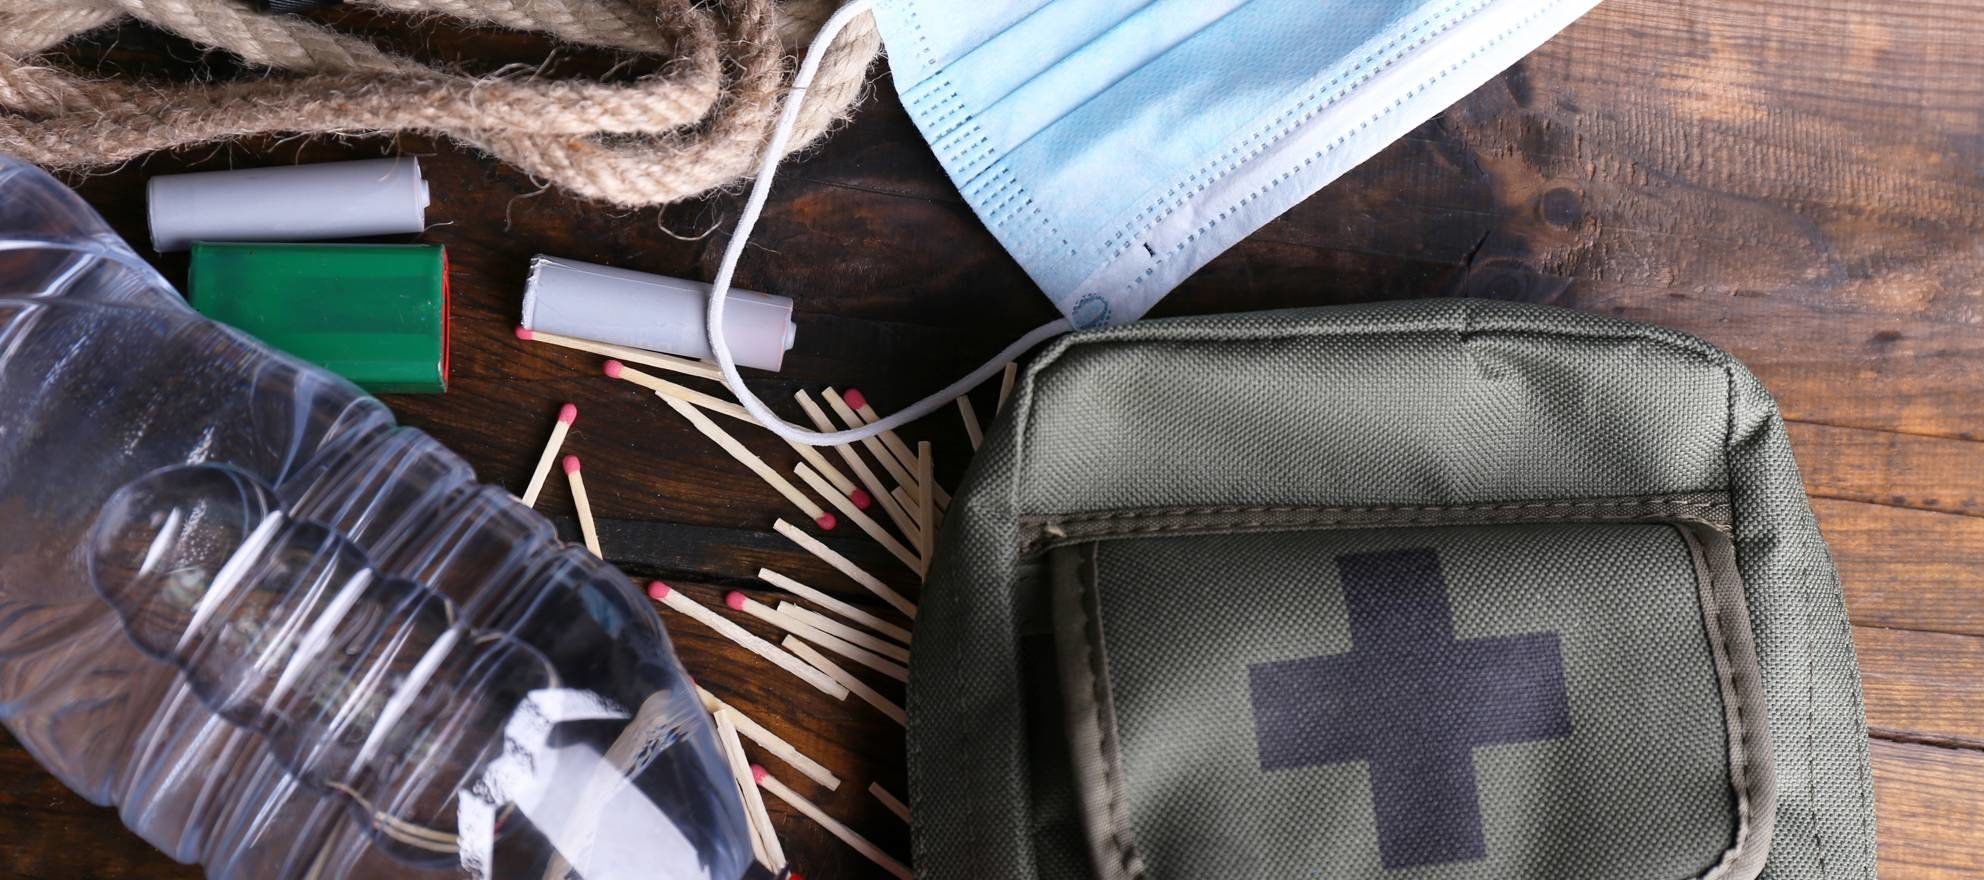 The real estate agent emergency kit: 11 must-have tools to keep in your car